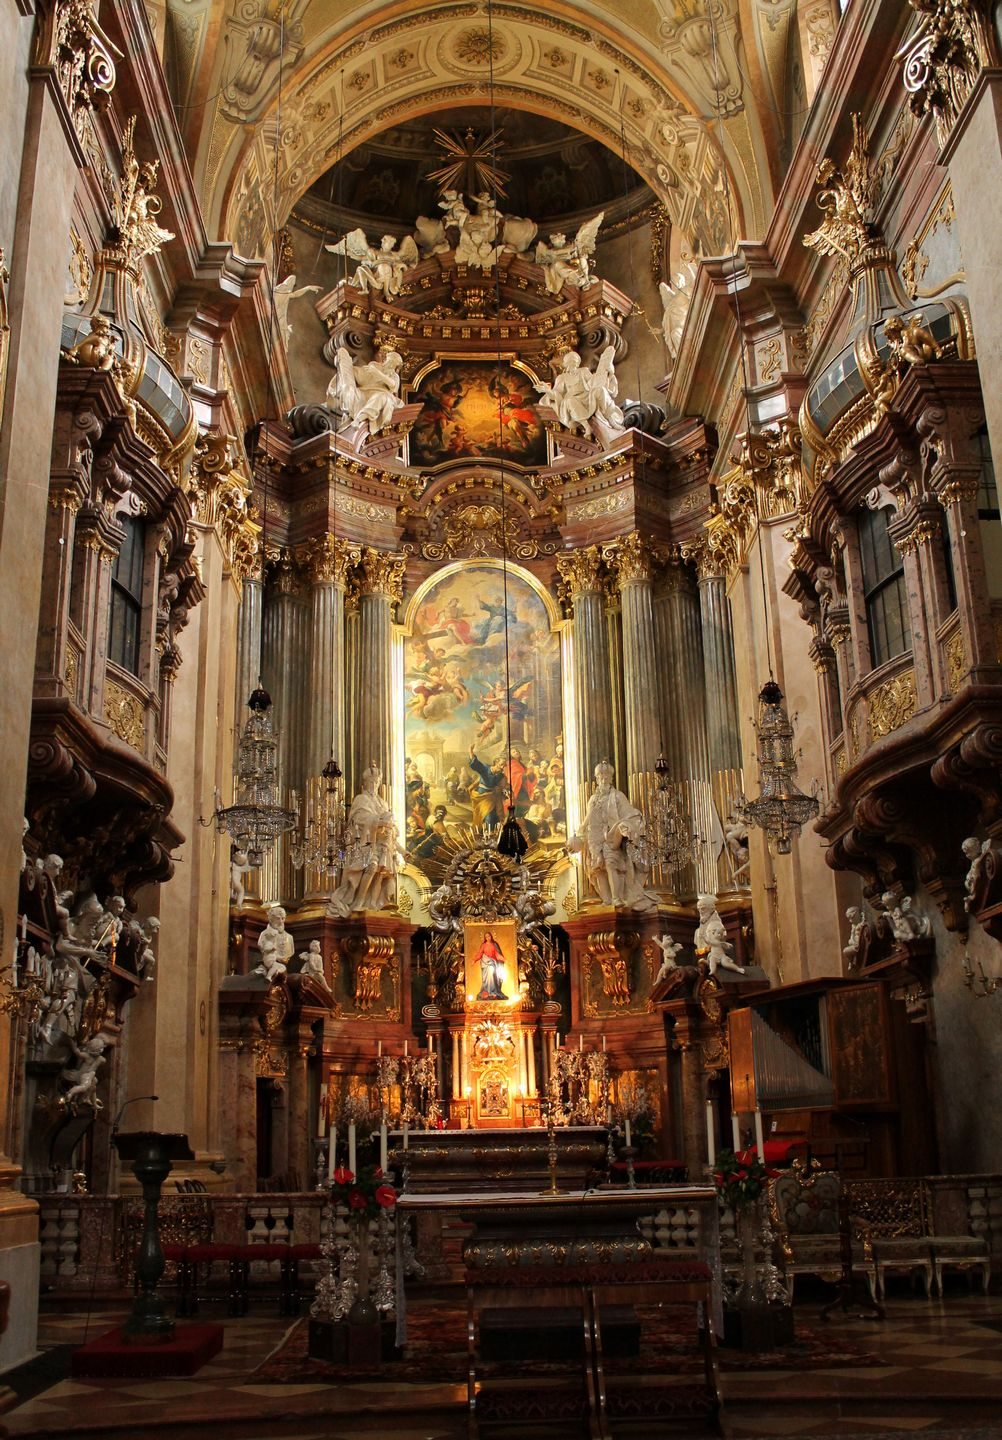 Source: Sarah Stierch (CC BY 4.0 license), at https://commons.wikimedia.org/wiki/File:Interior_of_St._Peter%27s_Church,_Vienna_-_Stierch_-A.jpg